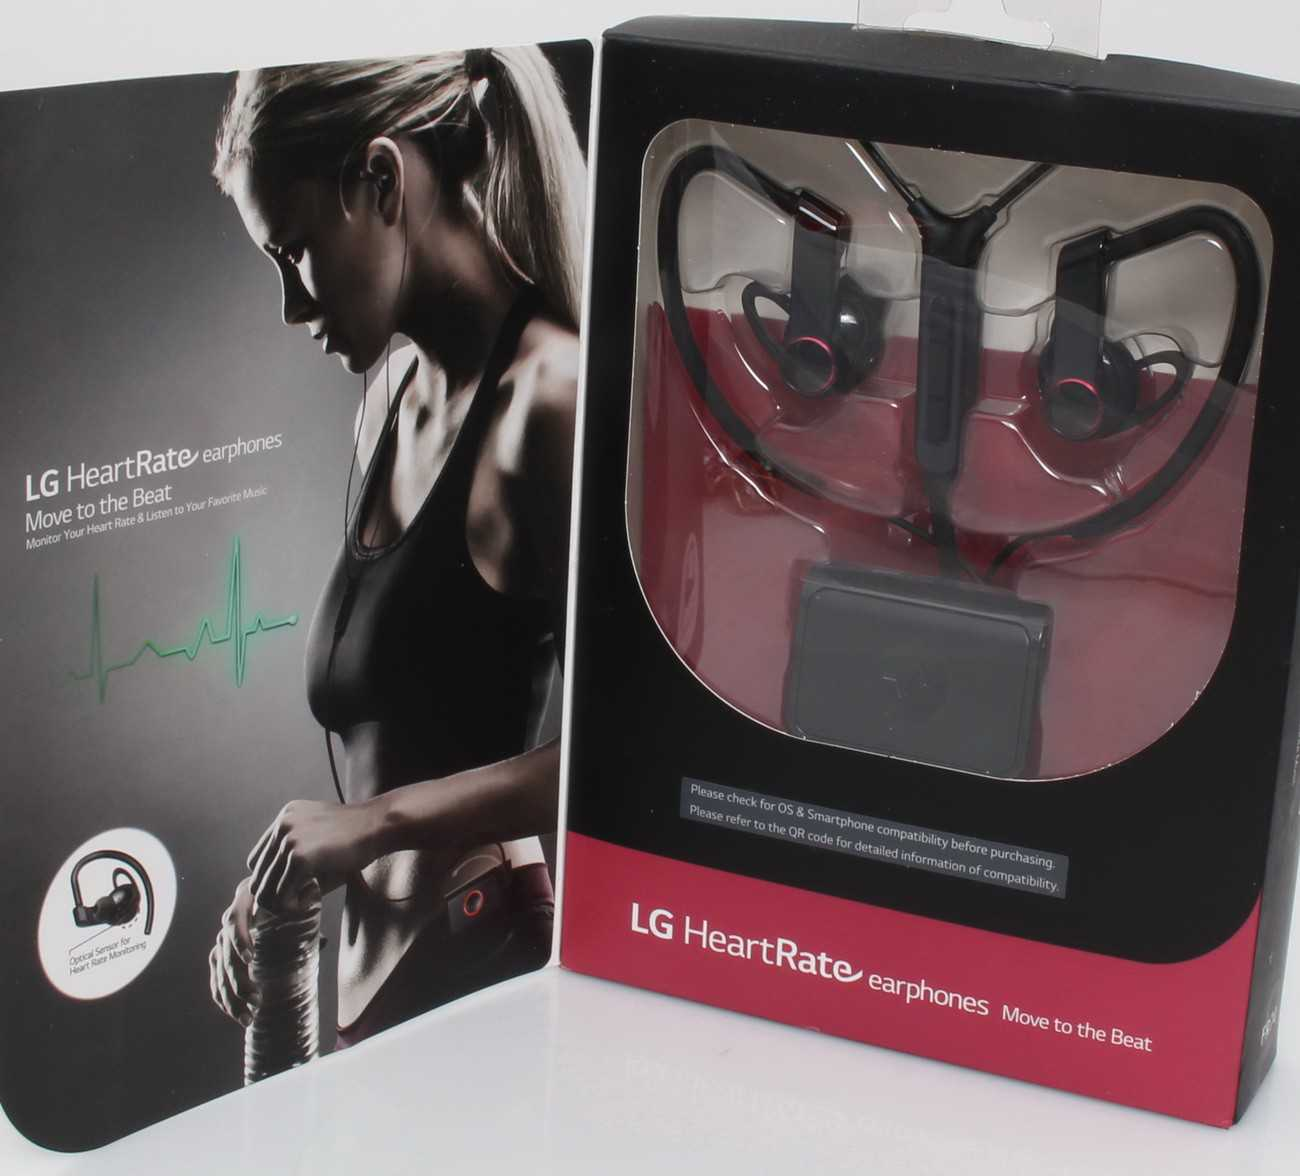 LG FR74 Heart Rate Monitor Earphones